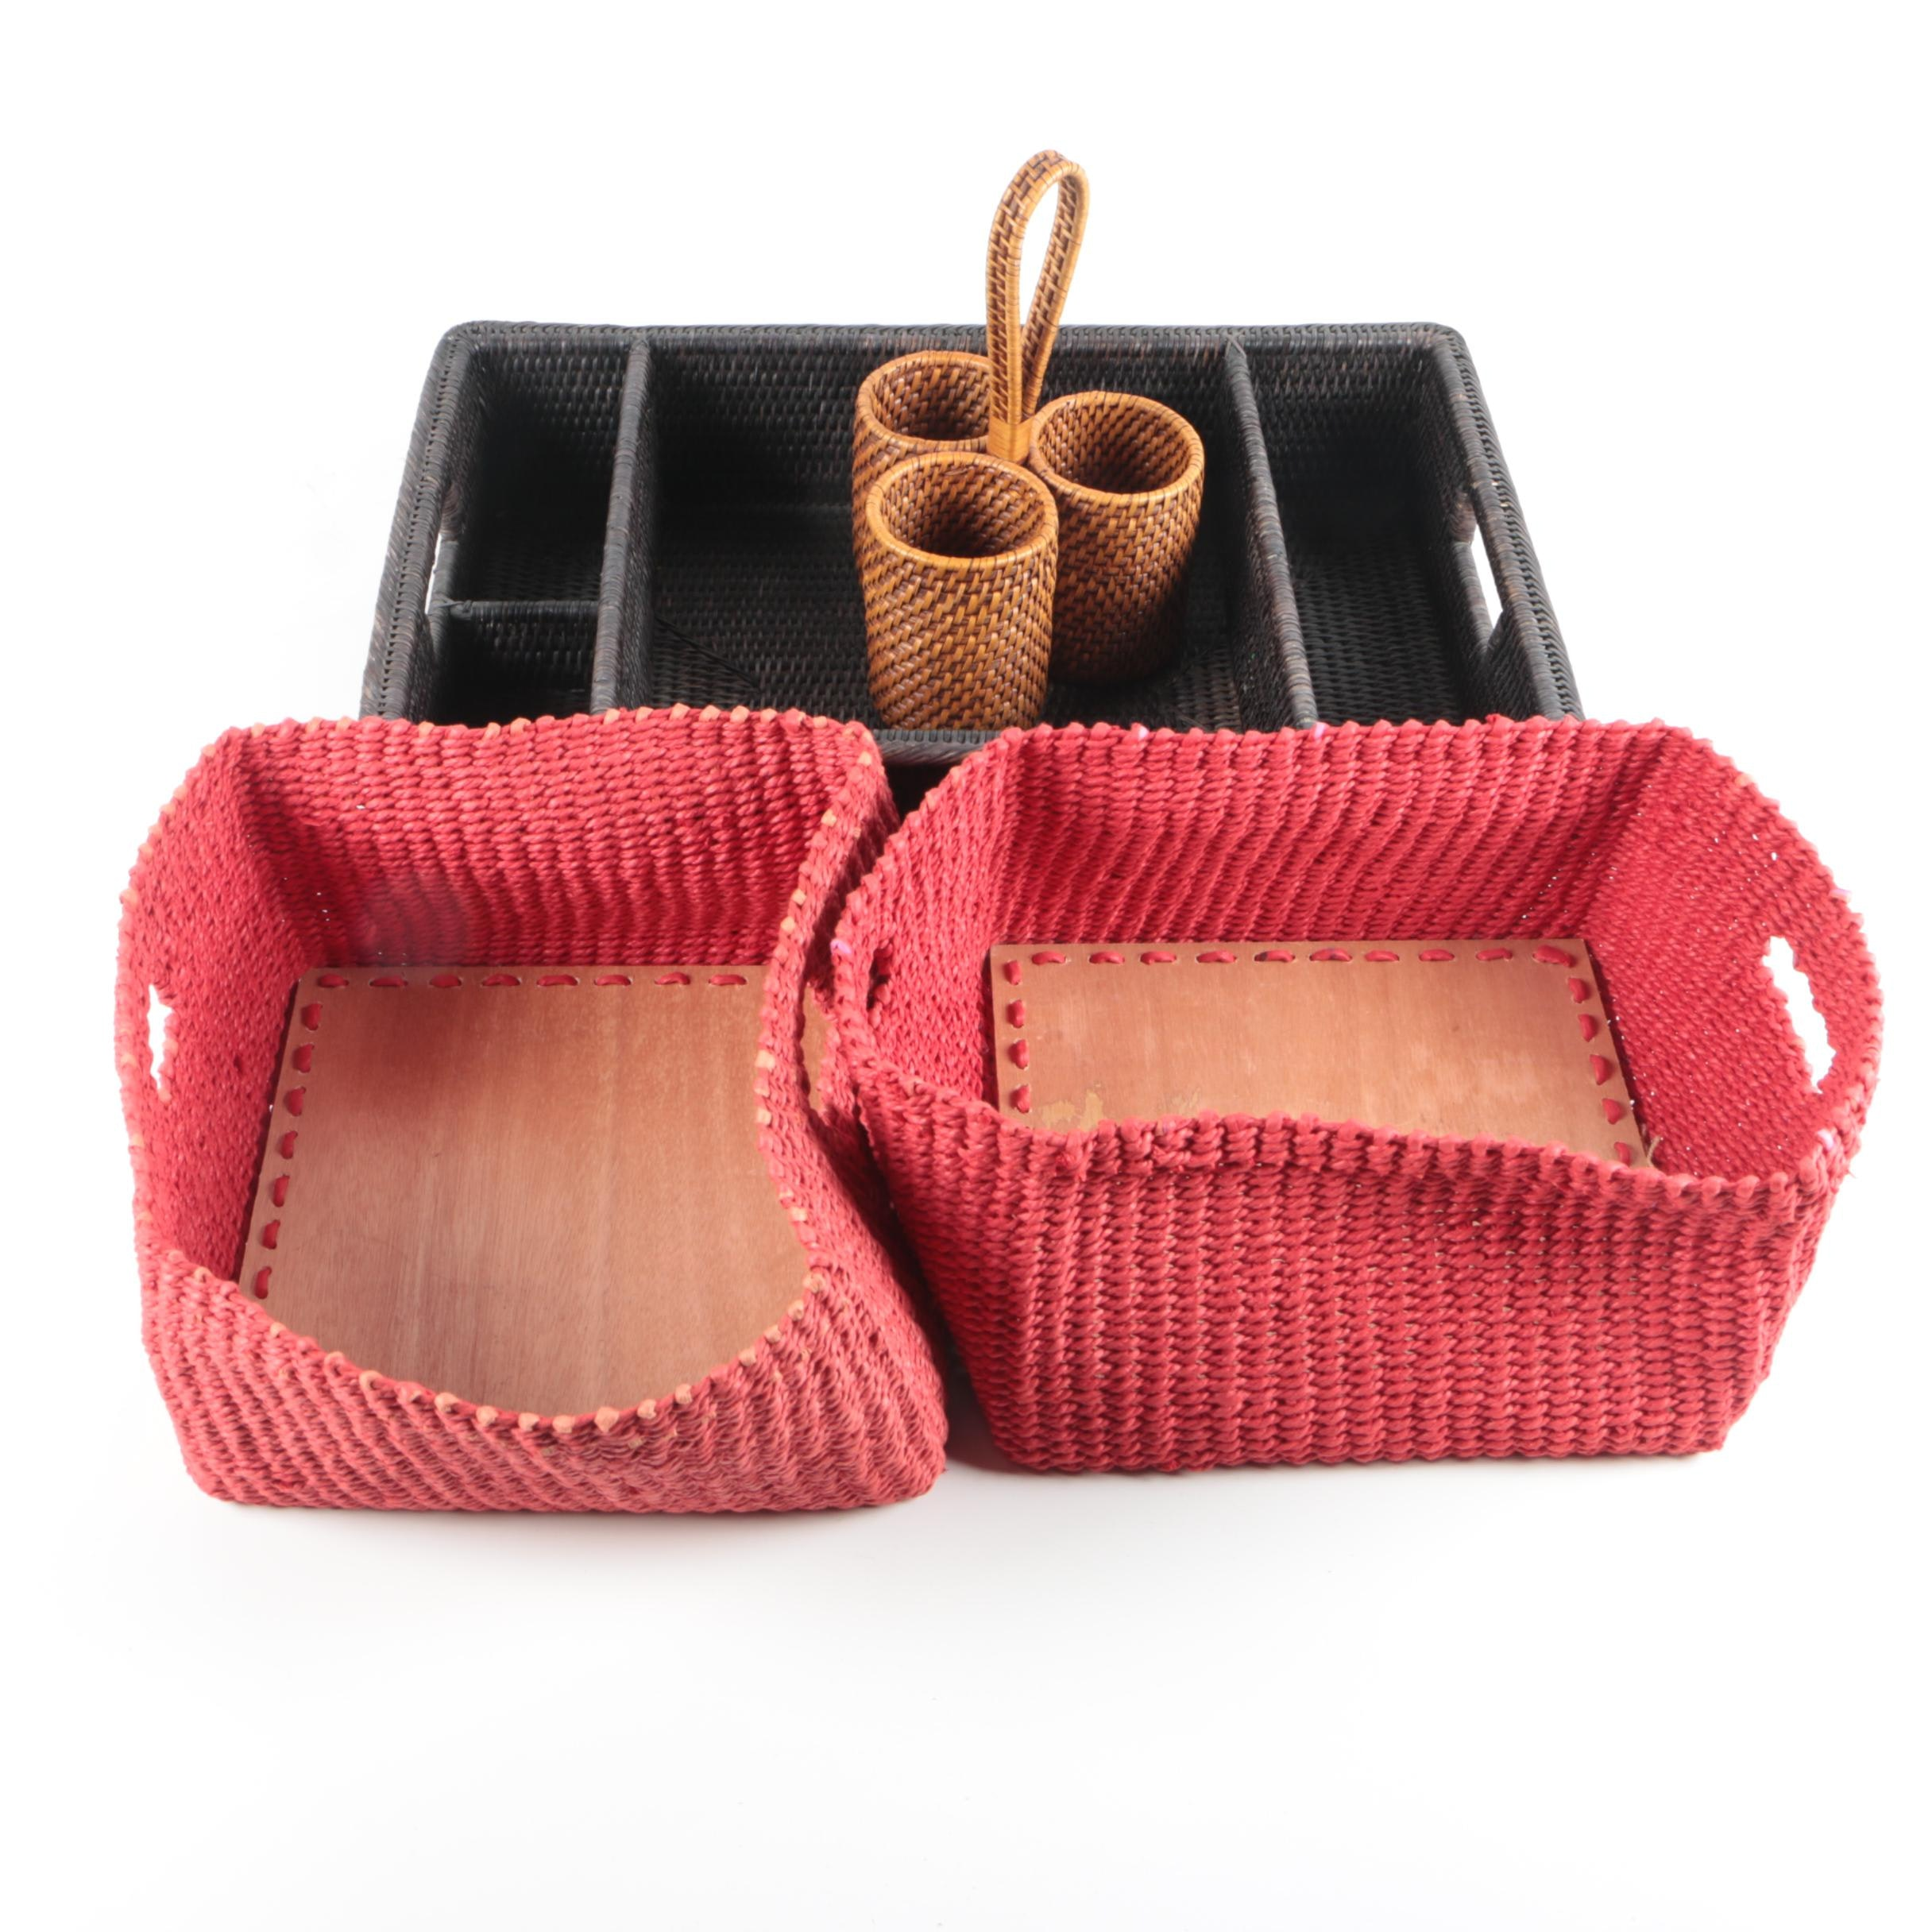 Woven Tray and Utensil Holder with Red Square Baskets